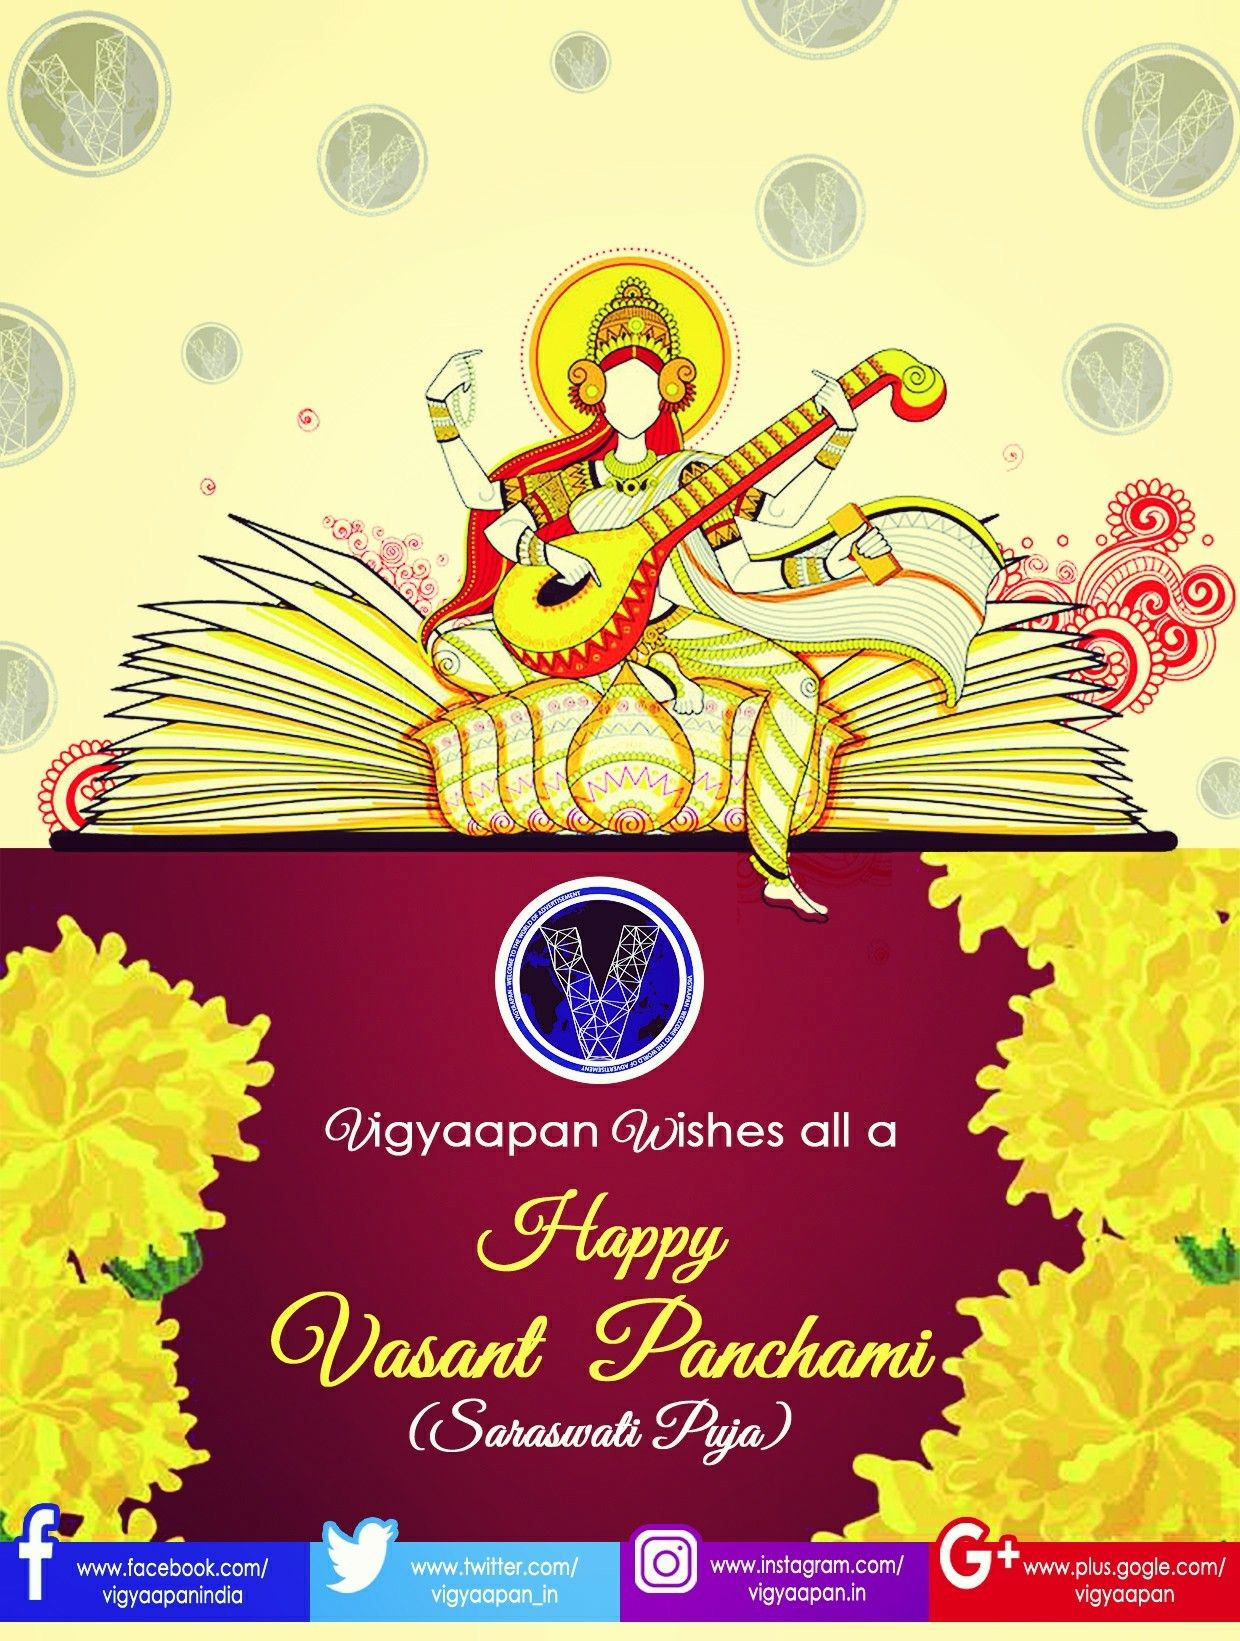 Vigyaapan Family Wishes All A Happy Vasant Panchami